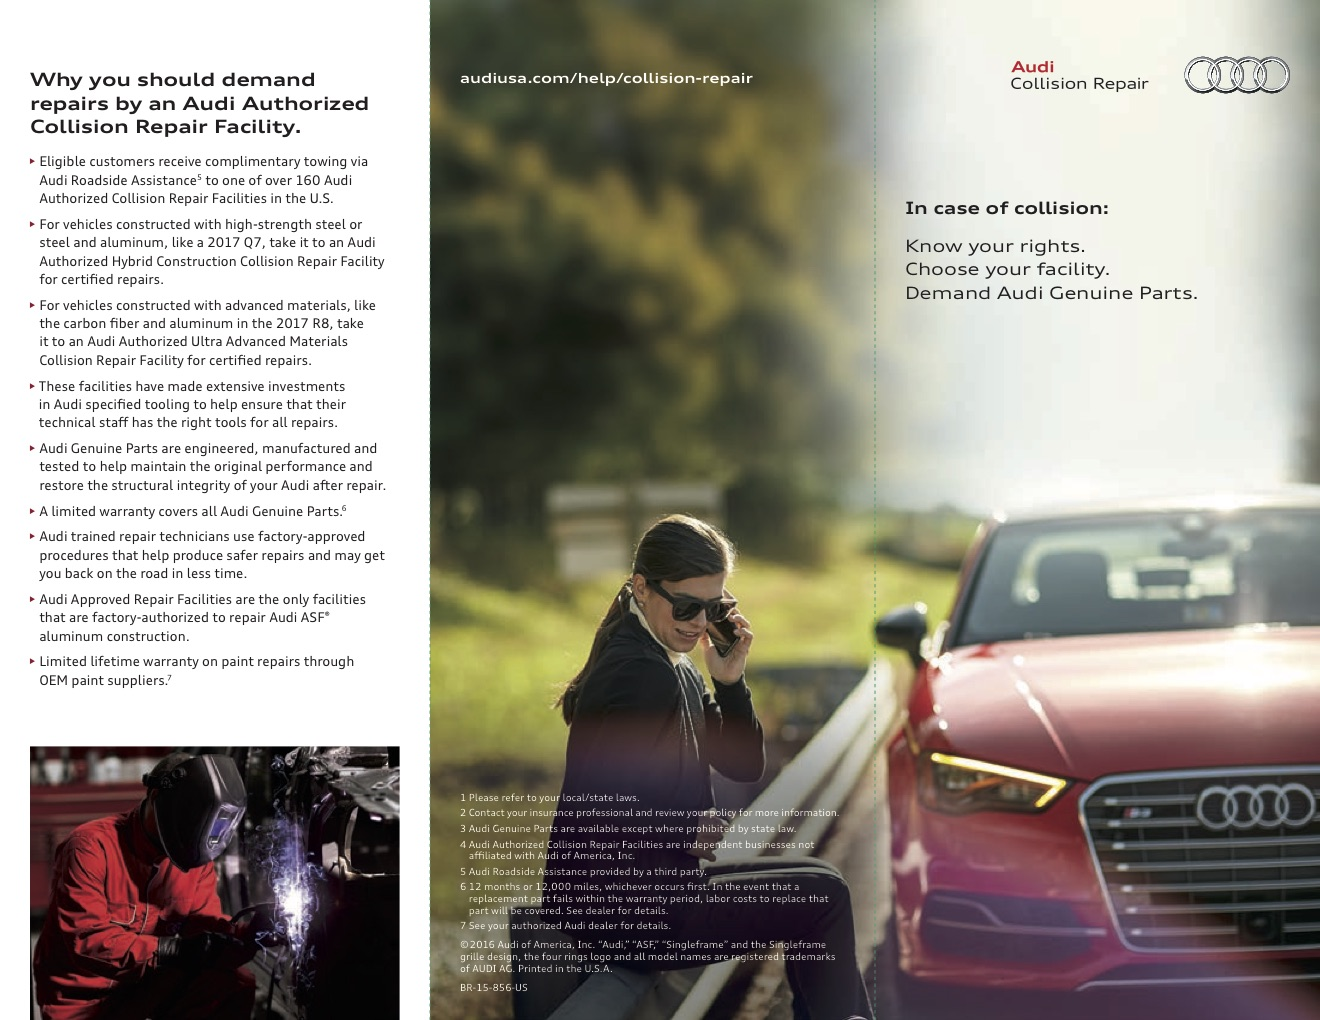 2017-Collision-Accident-Brochure-1